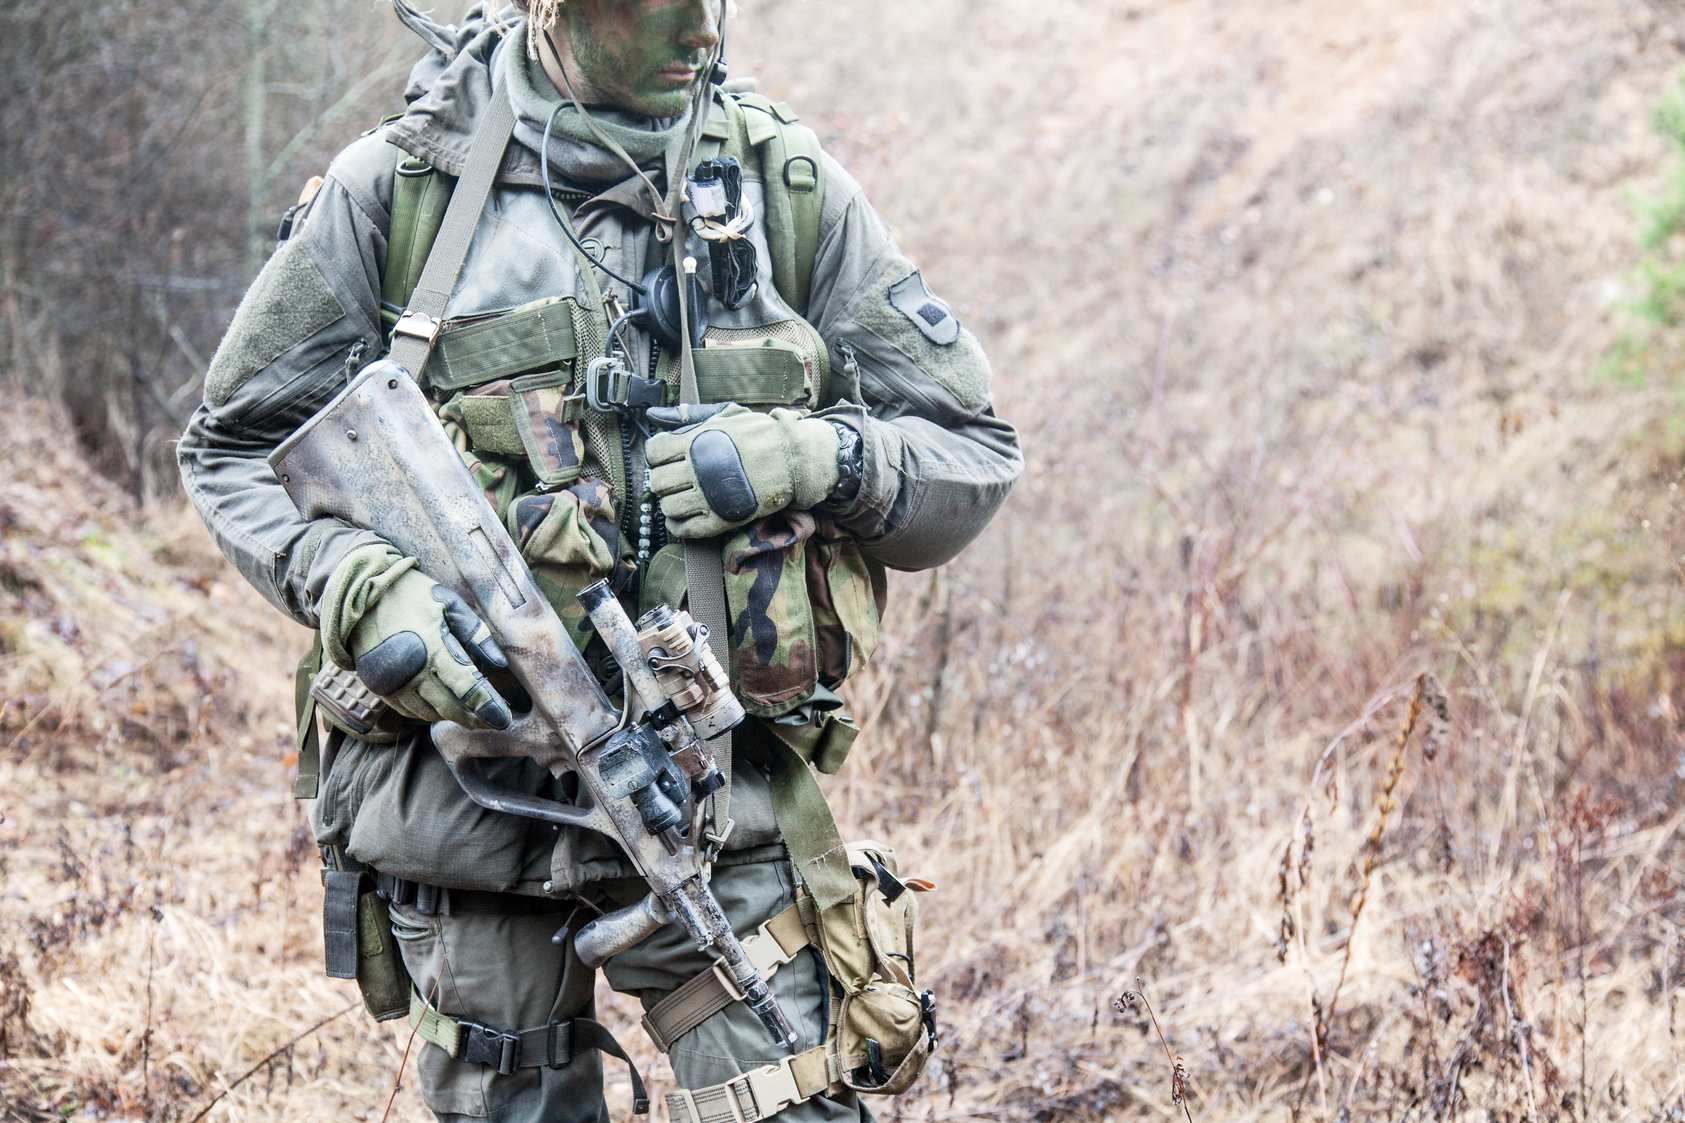 Jagdkommando soldier Austrian special forces equipped with Steyr assault rifle during the raid